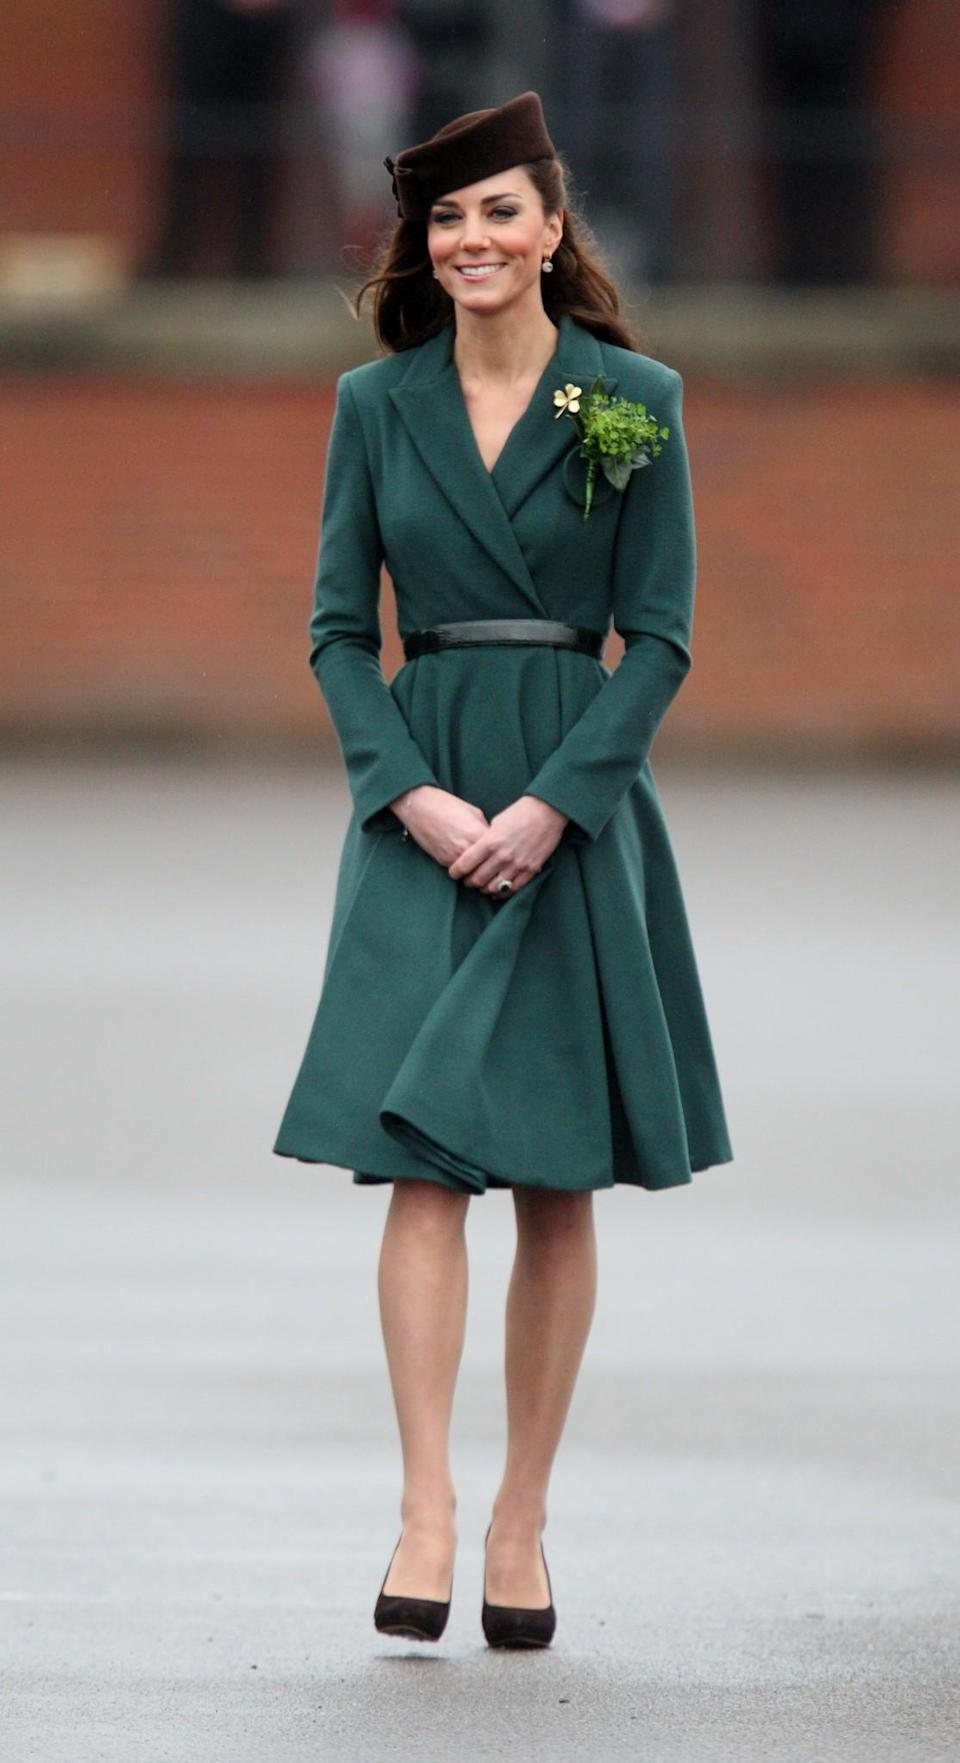 <p>For her first St Patrick's Day appearance, the Duchess wore an Emilia Wickstead green coat dress that instantly landed on every woman's wish-list. She teamed the jacket with a brown belt that cinched in her tiny waist and Jimmy Choo shoes. <em>[Photo: PA]</em> </p>